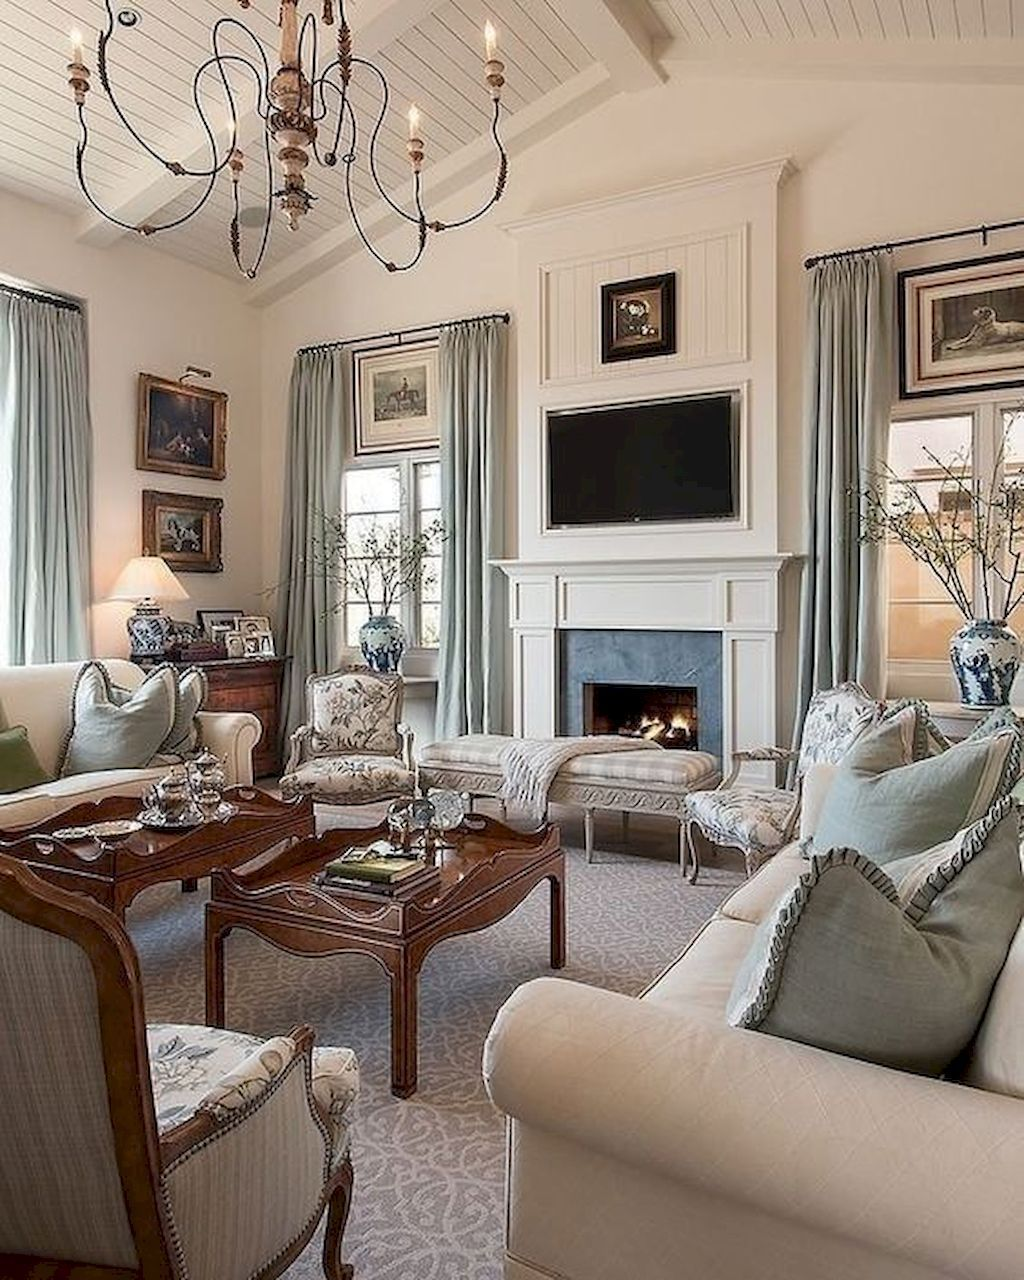 37+ Comfy French Country Living Room Decor Ideas | Living ...